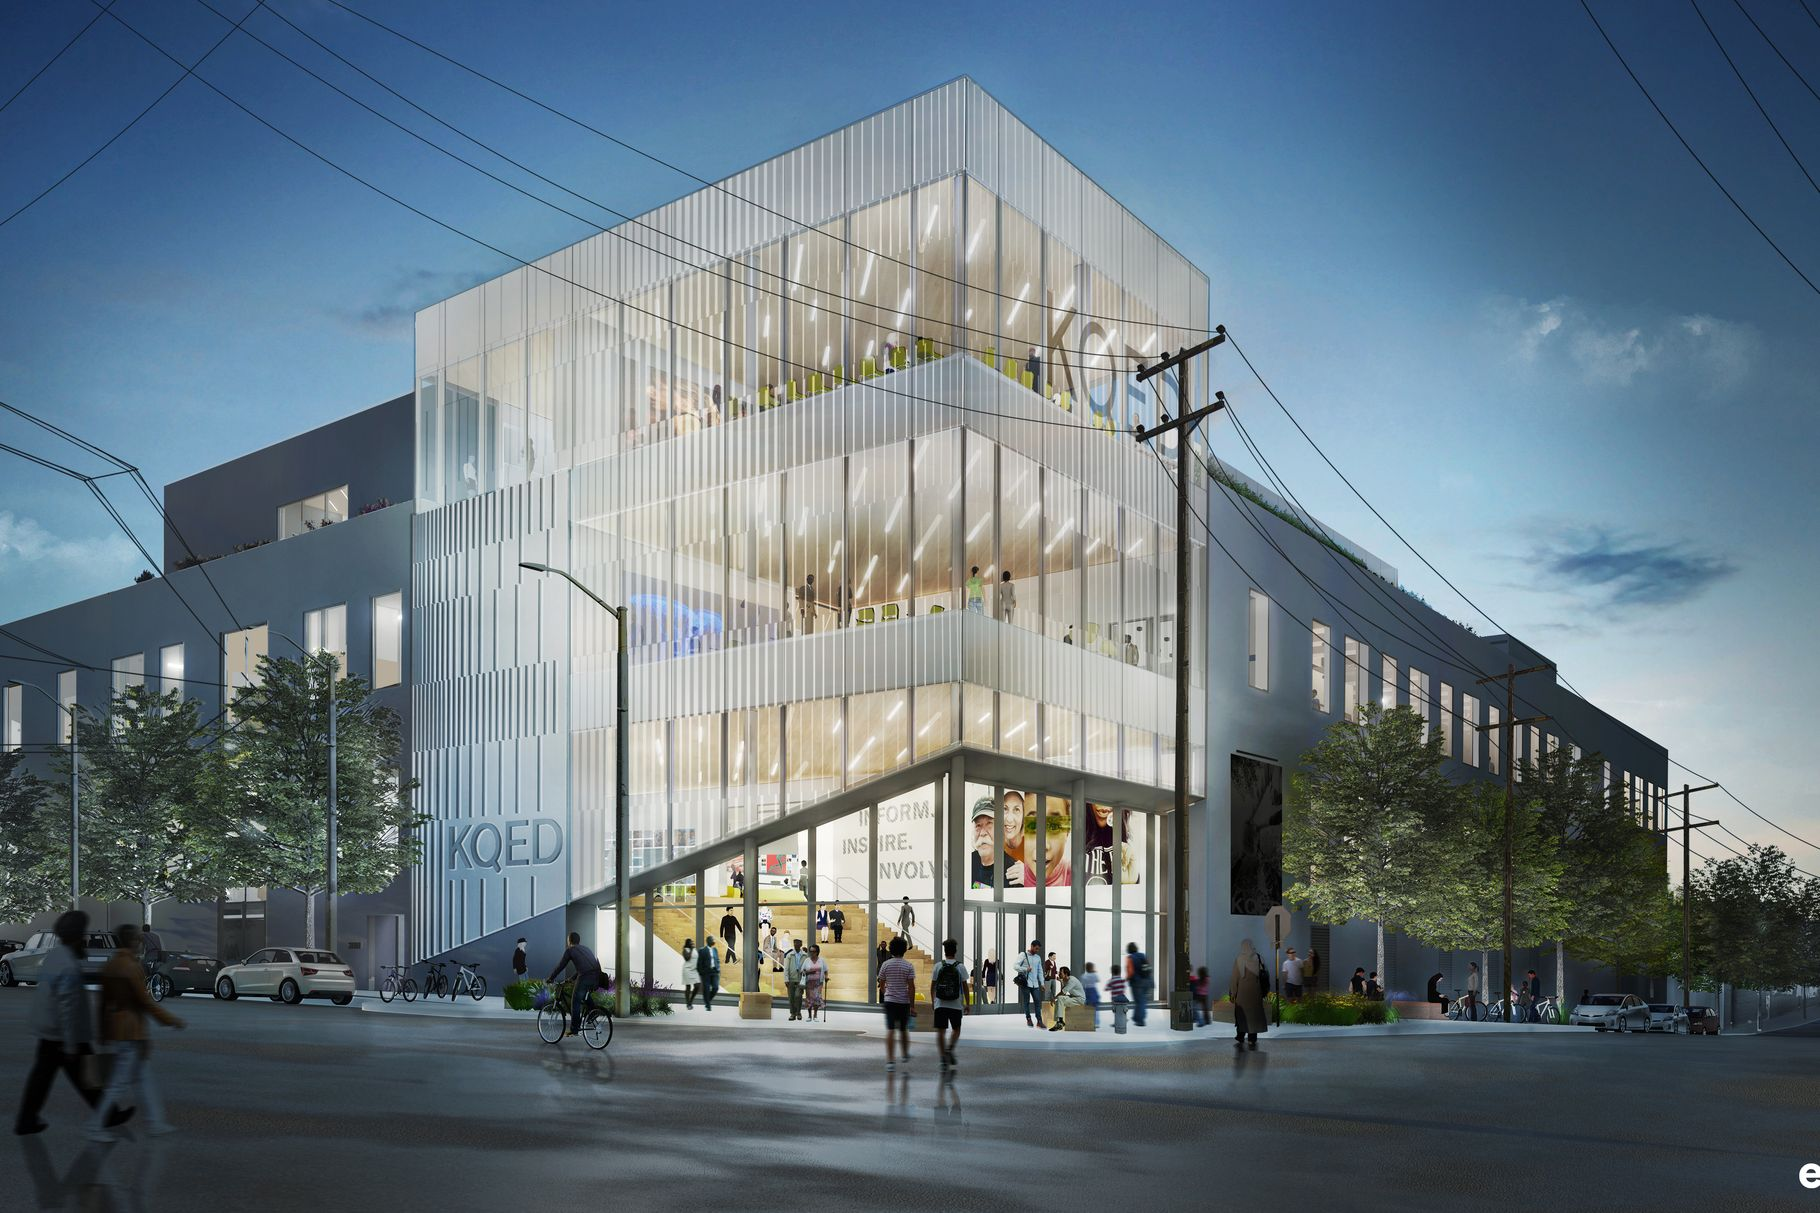 Rendering of a glassy building with KQED on top